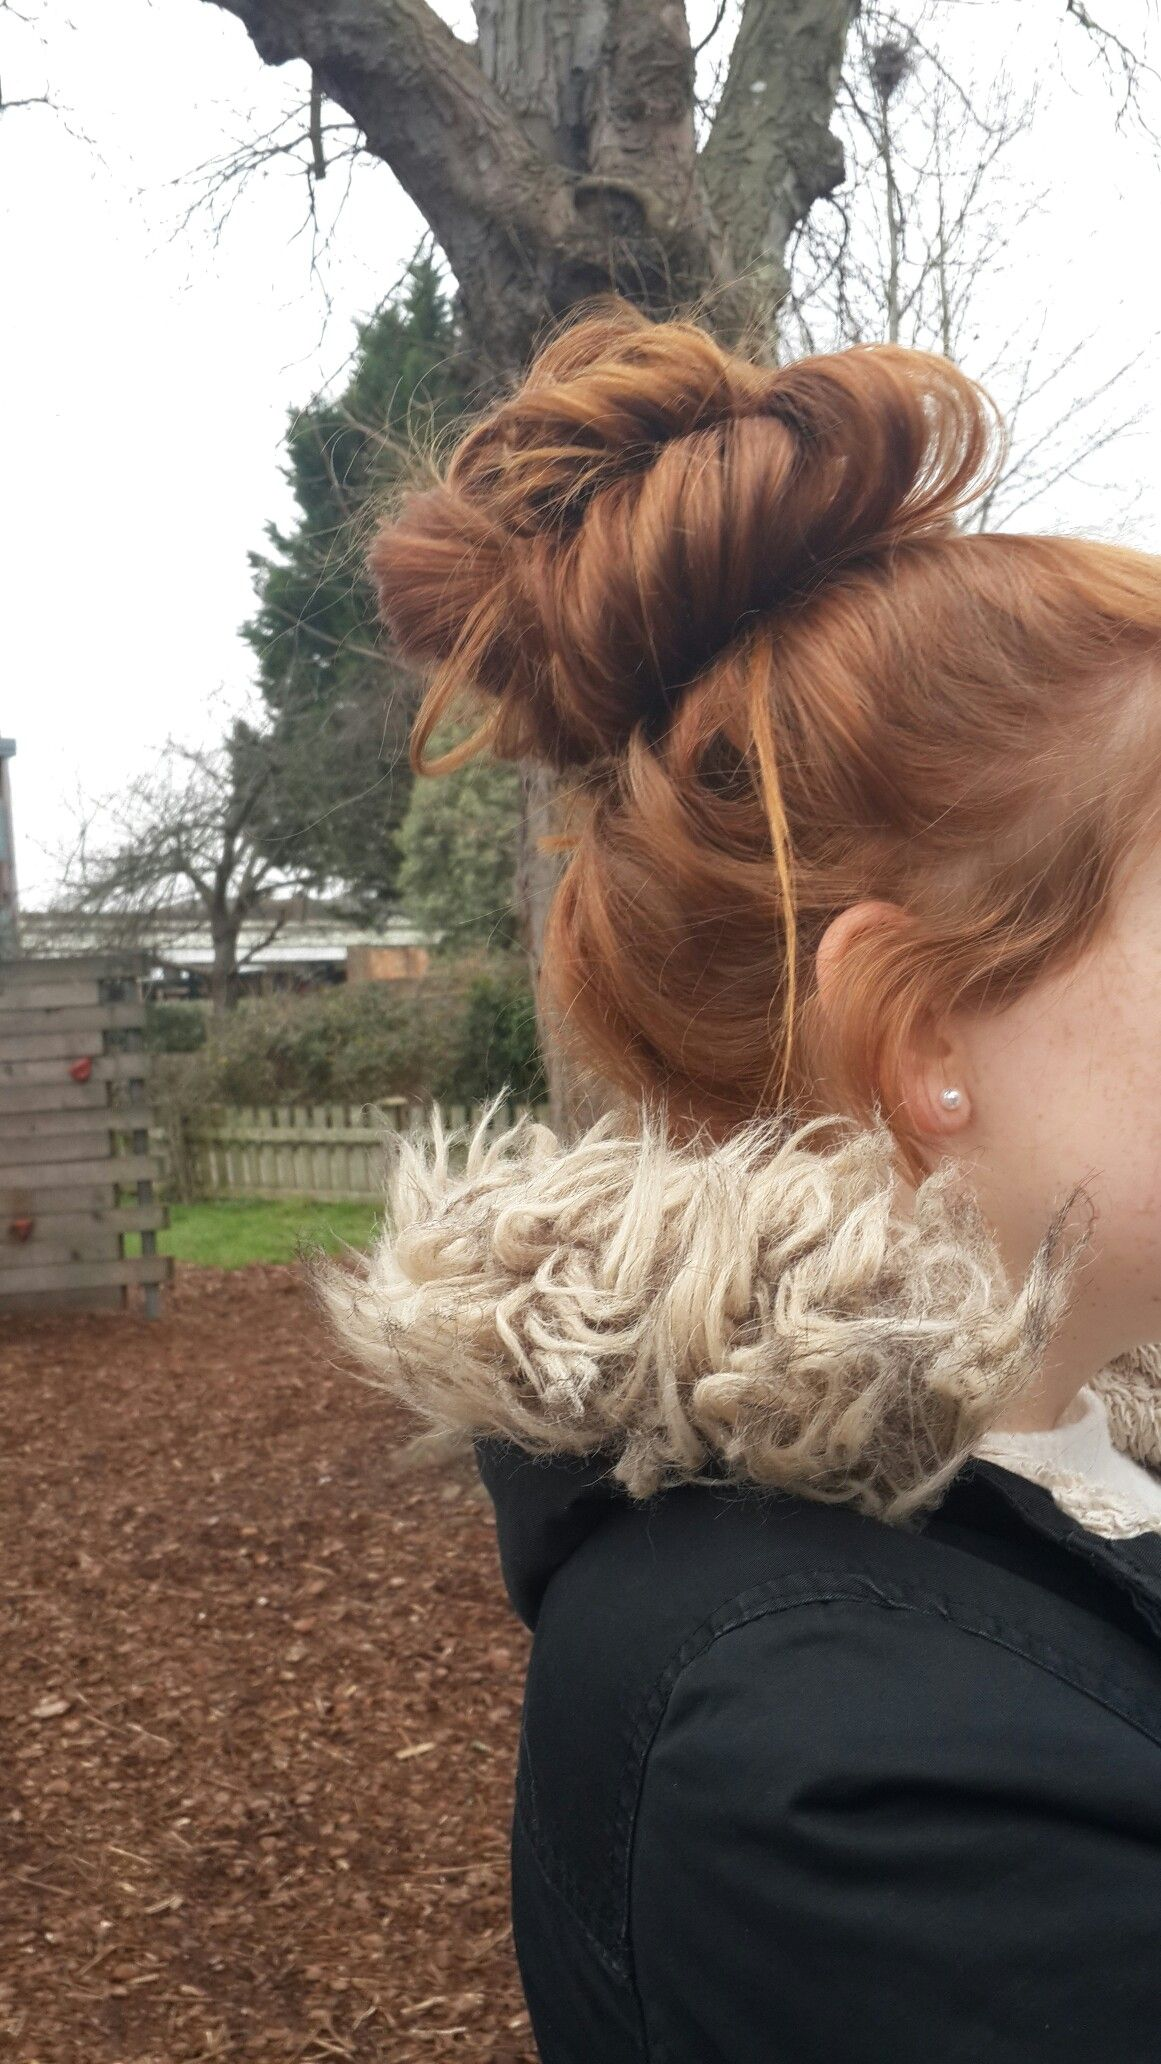 ginger hair. cute bun. messy bun. tumblr | messy buns in